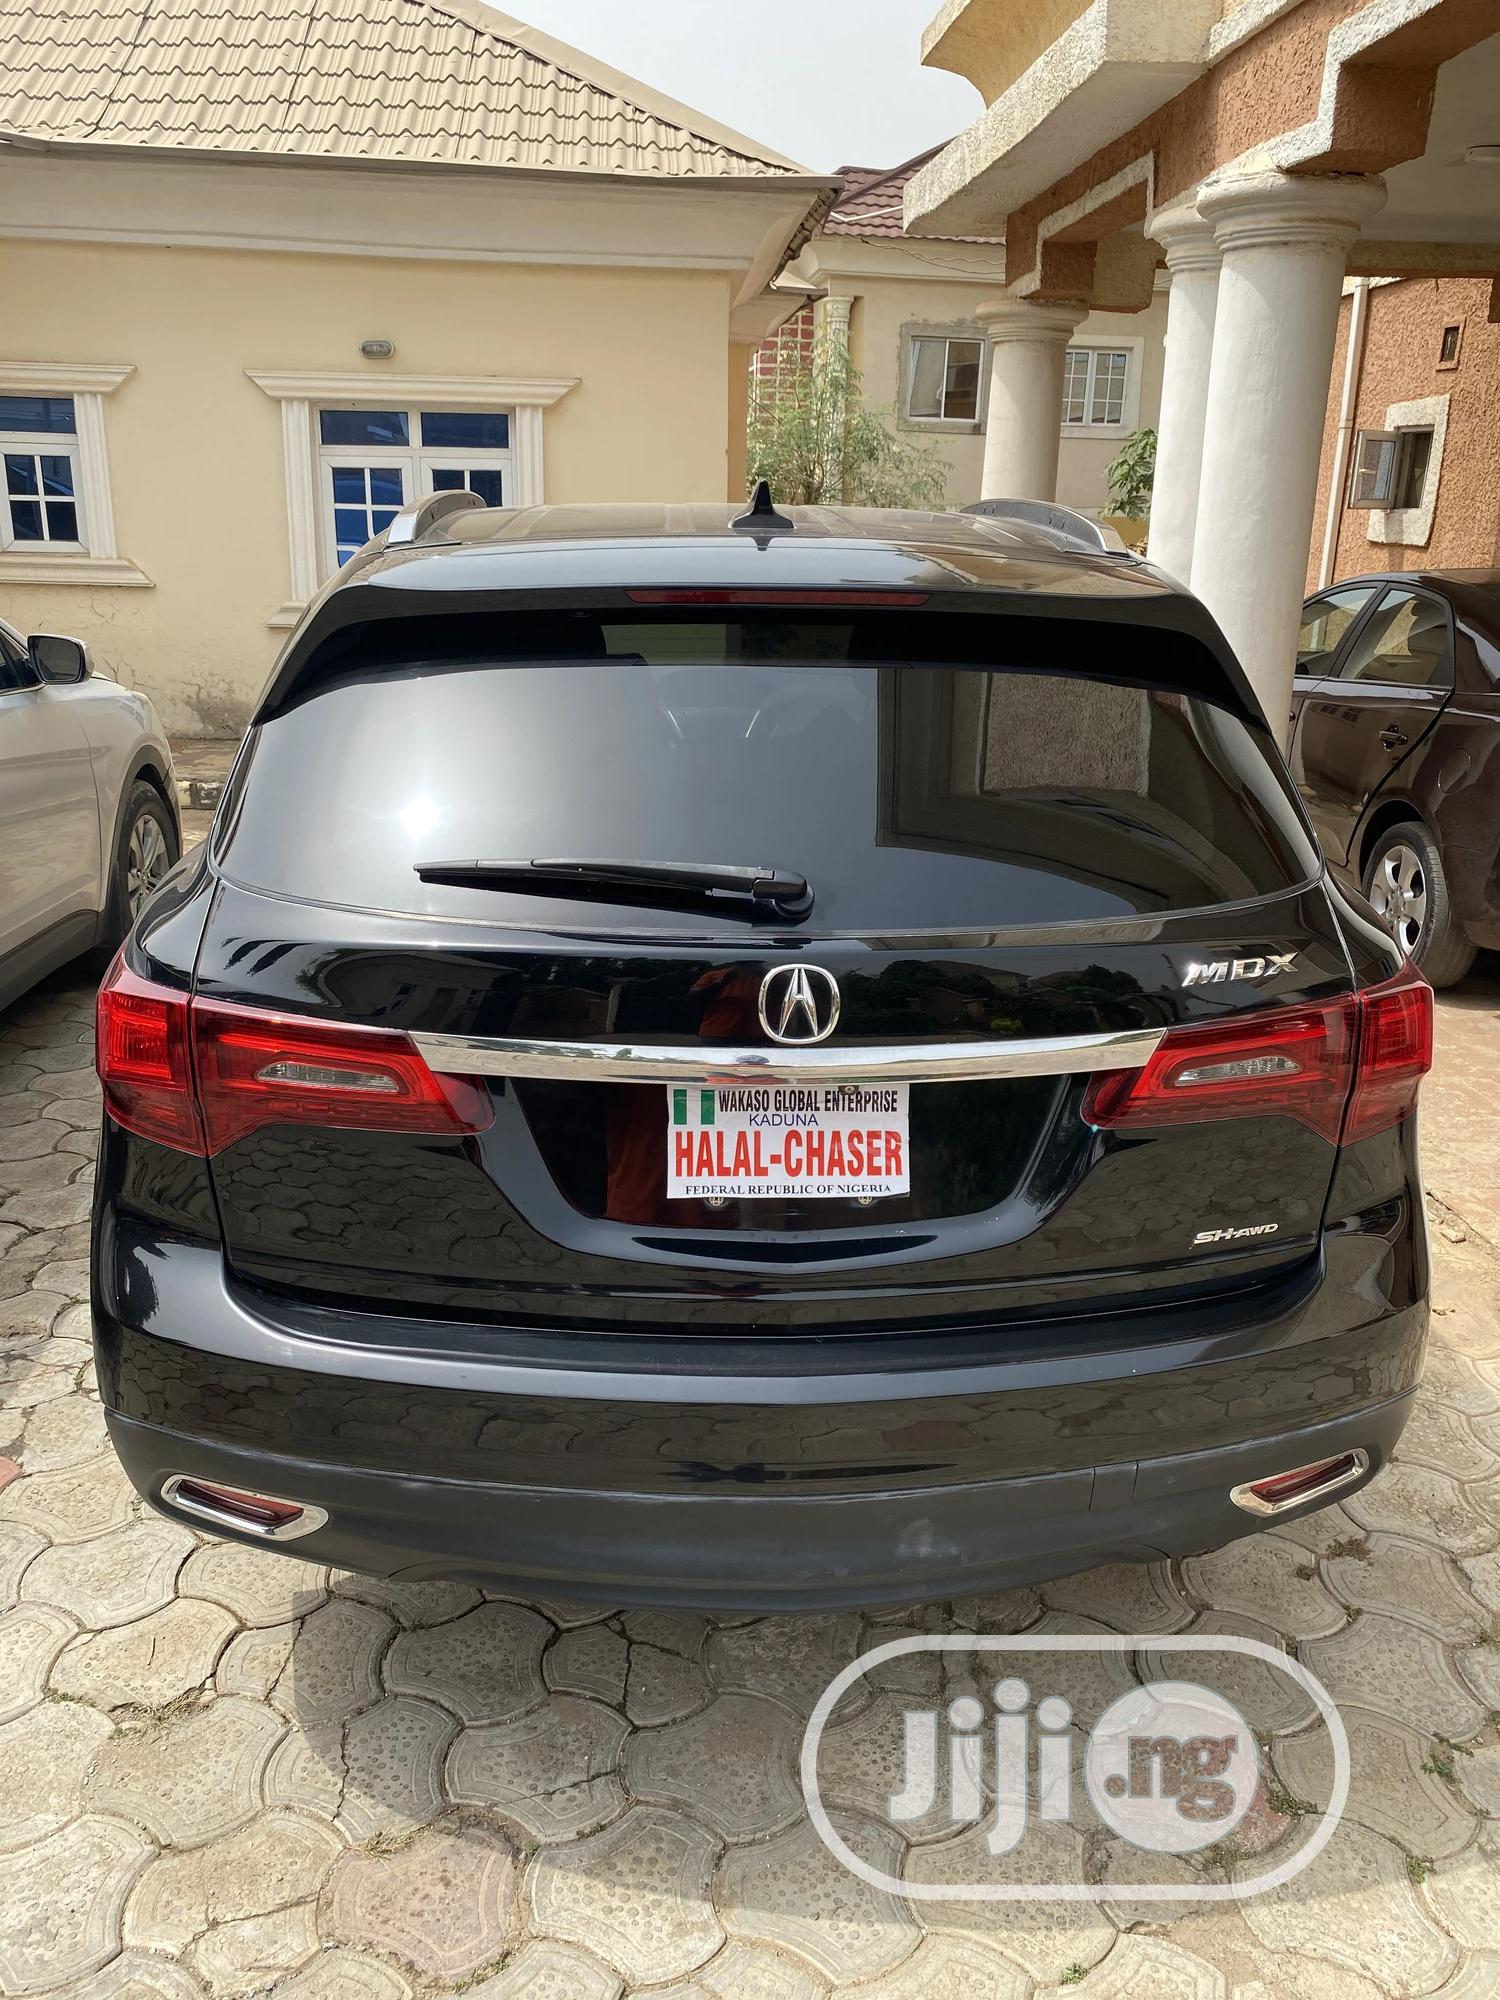 Archive: Acura MDX 2014 4dr SUV (3.5L 6cyl 6A) Black